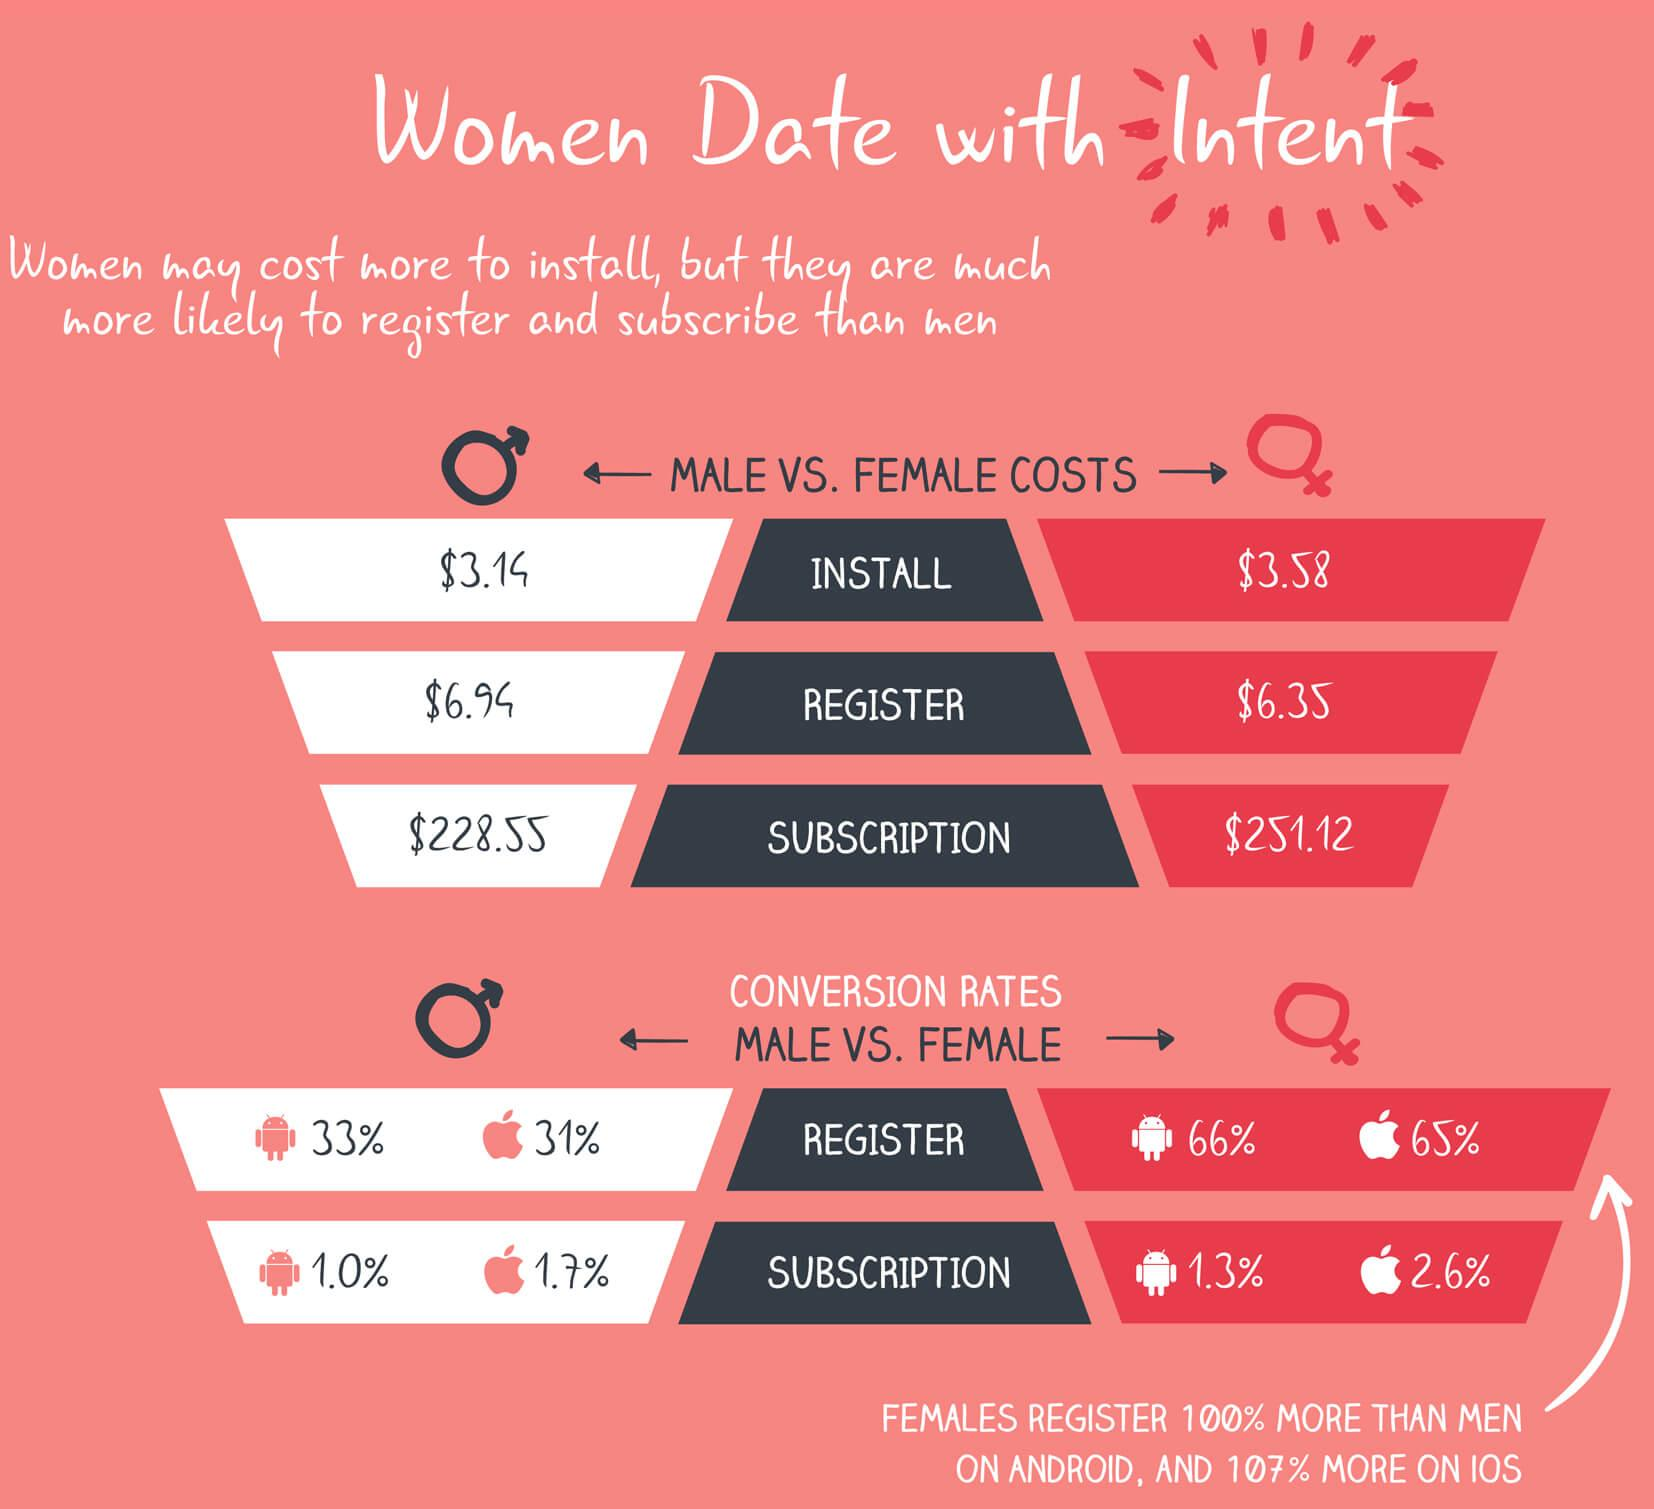 best free european dating sites See experts' picks for the 10 best dating sites of 2018 compare online dating reviews, stats, free trials, and more (as seen on cnn and foxnews).